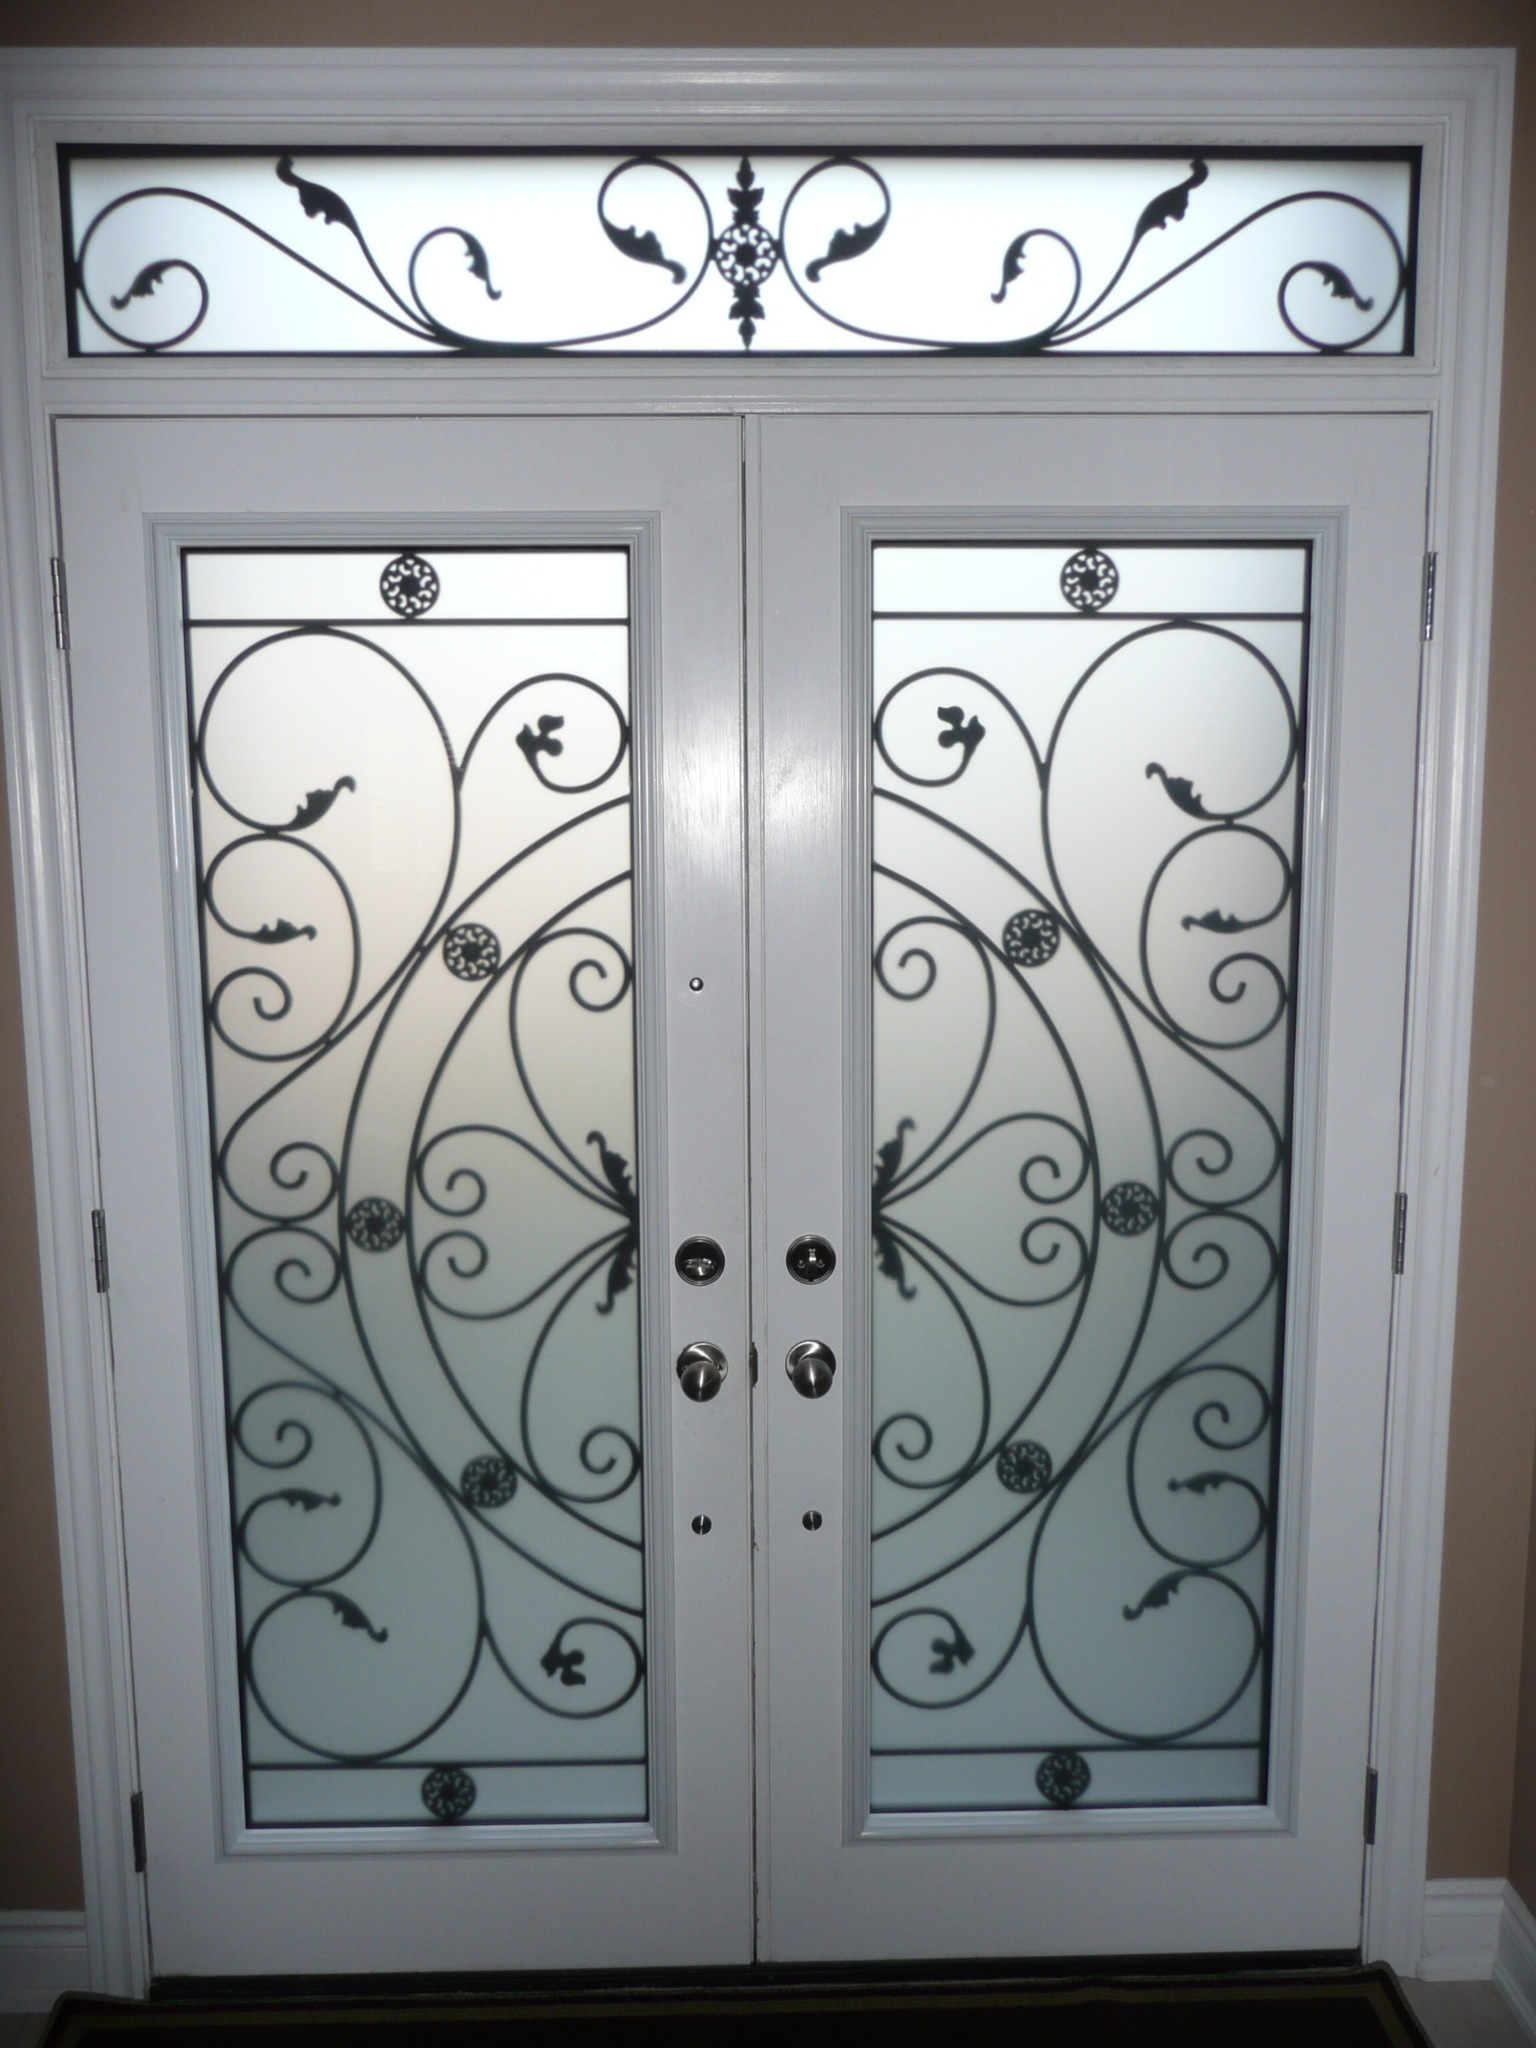 Campbellsford-Wrought-Iron-Glass-Door-Inserts-Brampton-Ontario